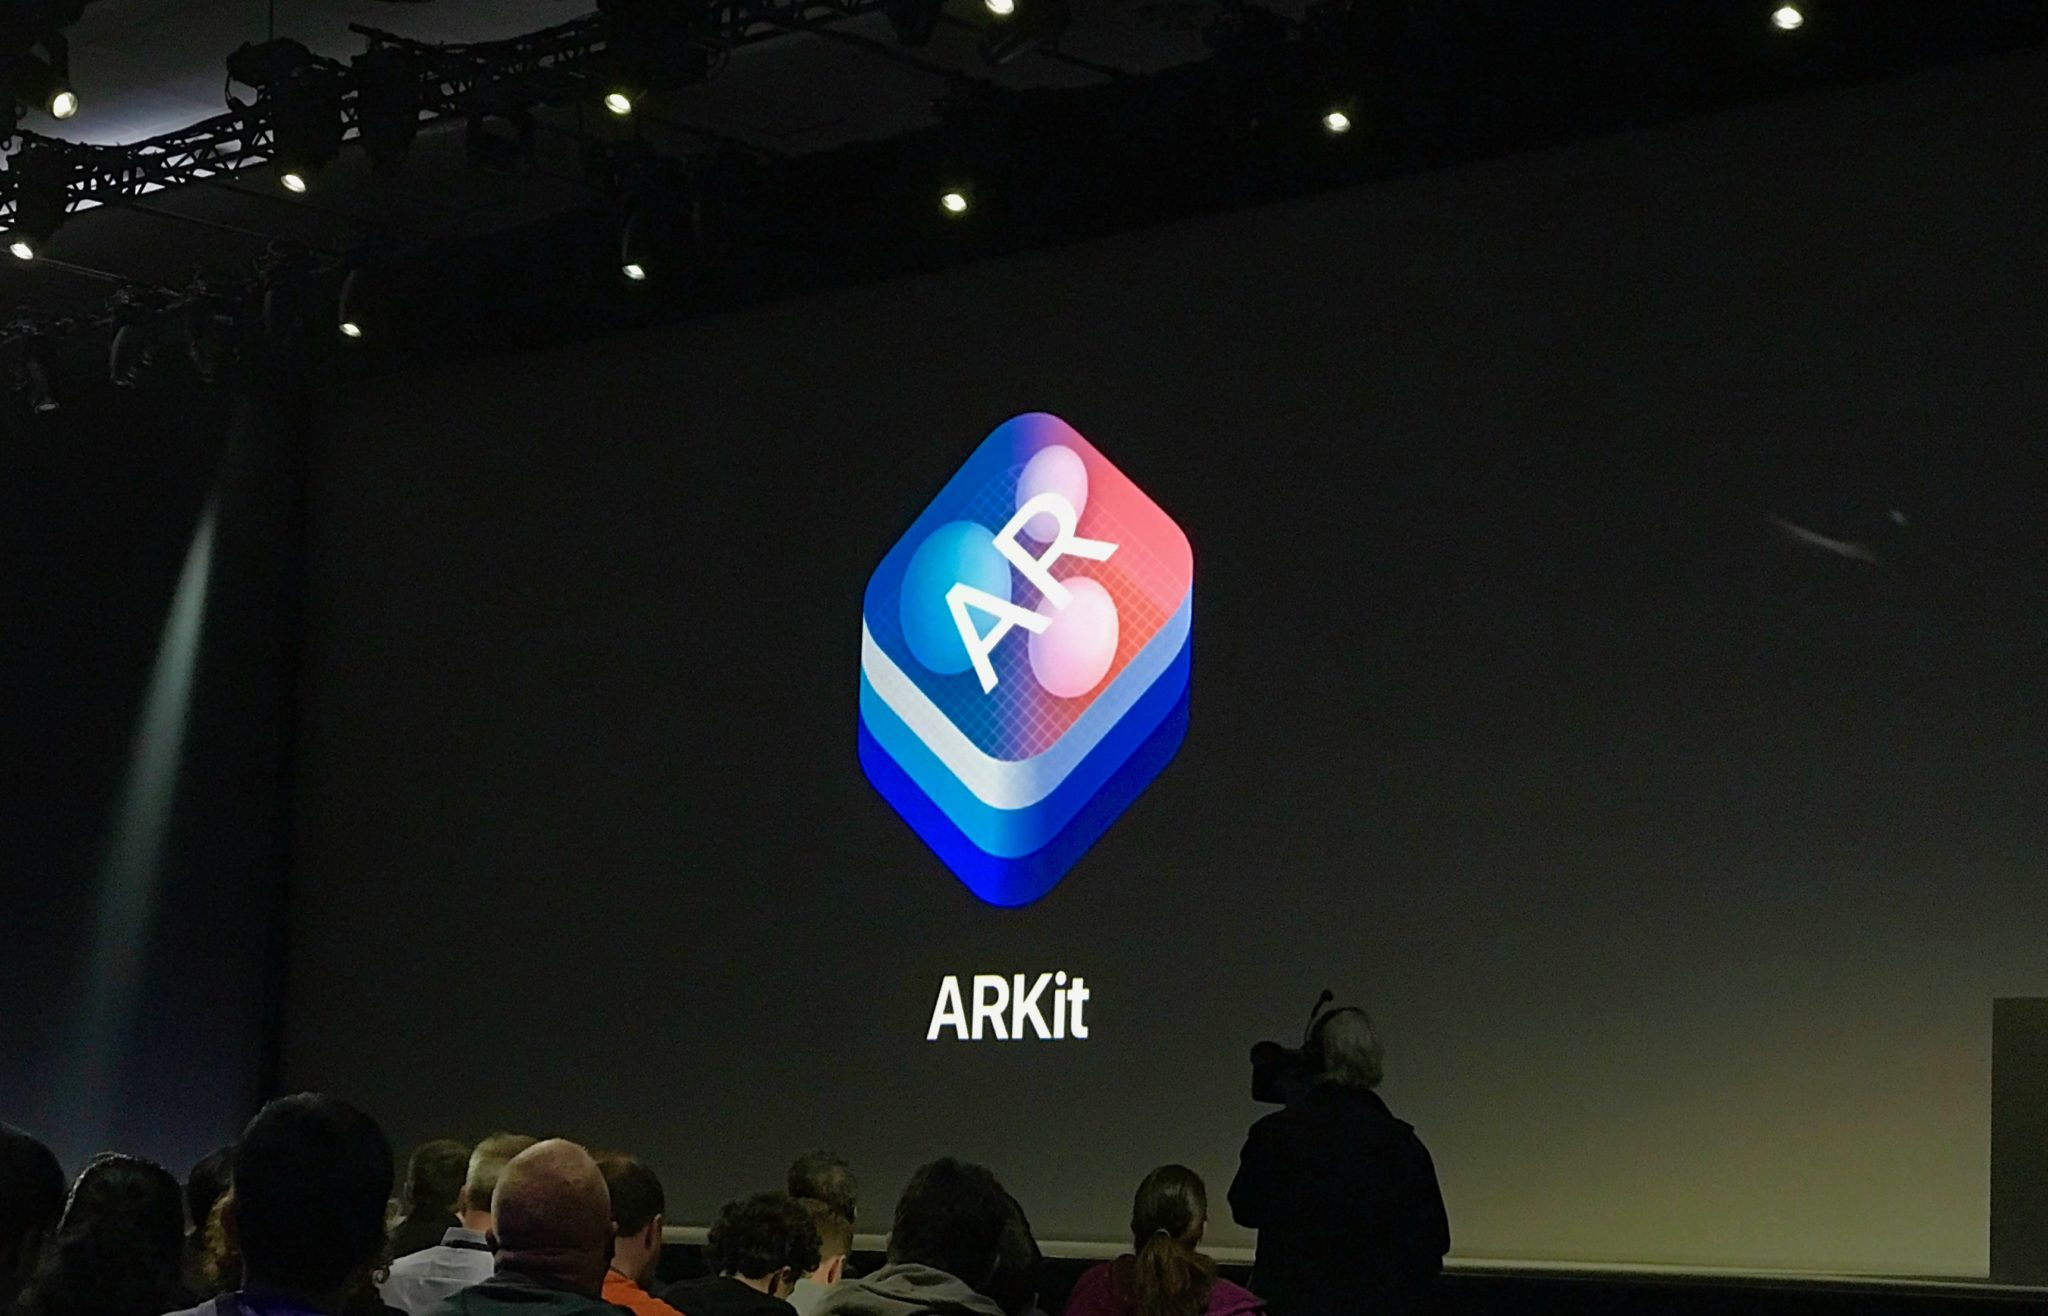 ARKit at WWDC 2017